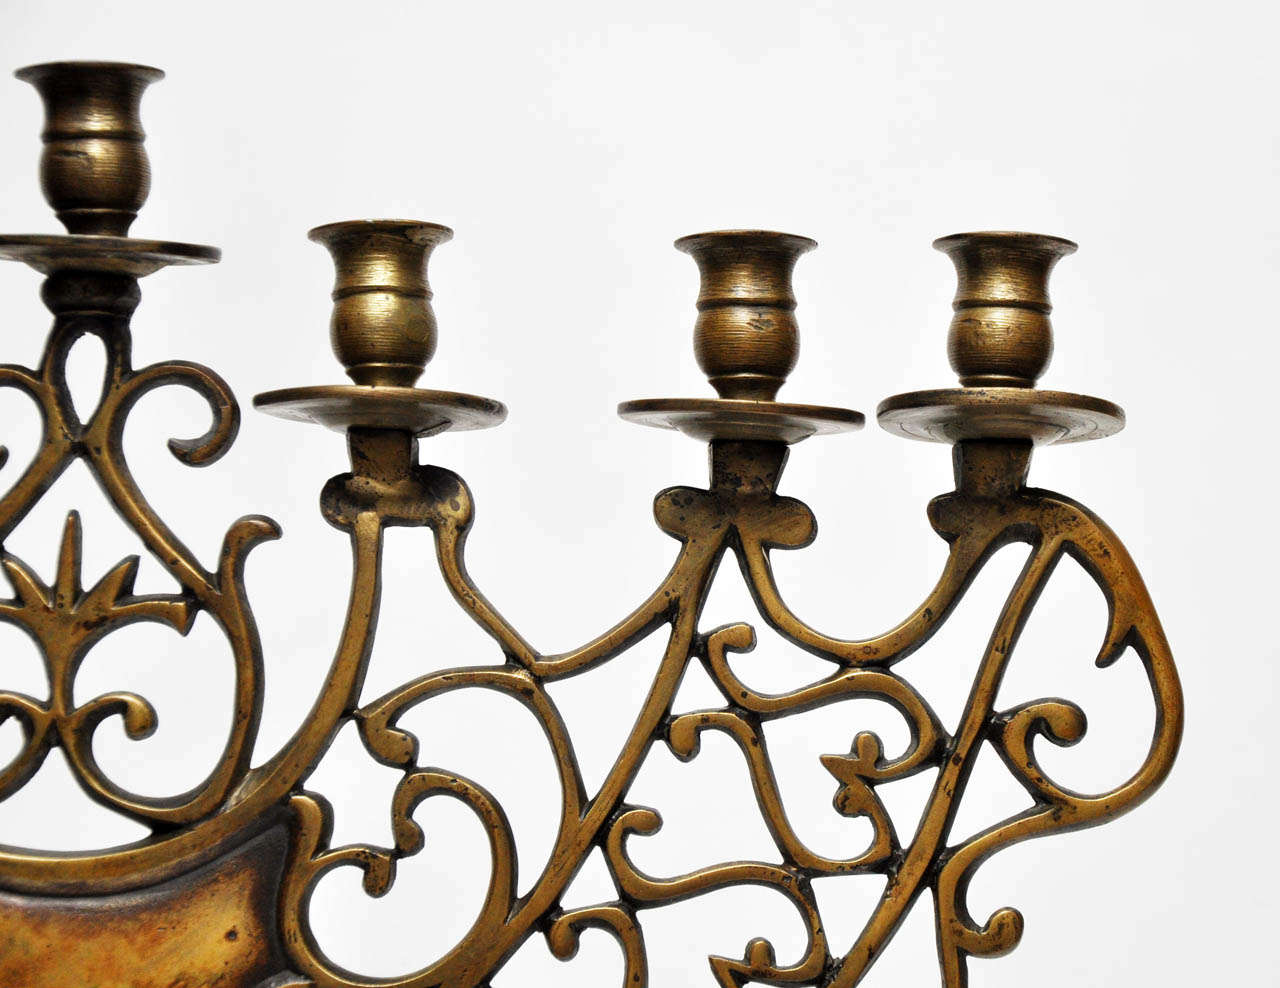 Pair of 19th Century Bronze Synagogue Menorahs In Good Condition For Sale In Chicago, IL